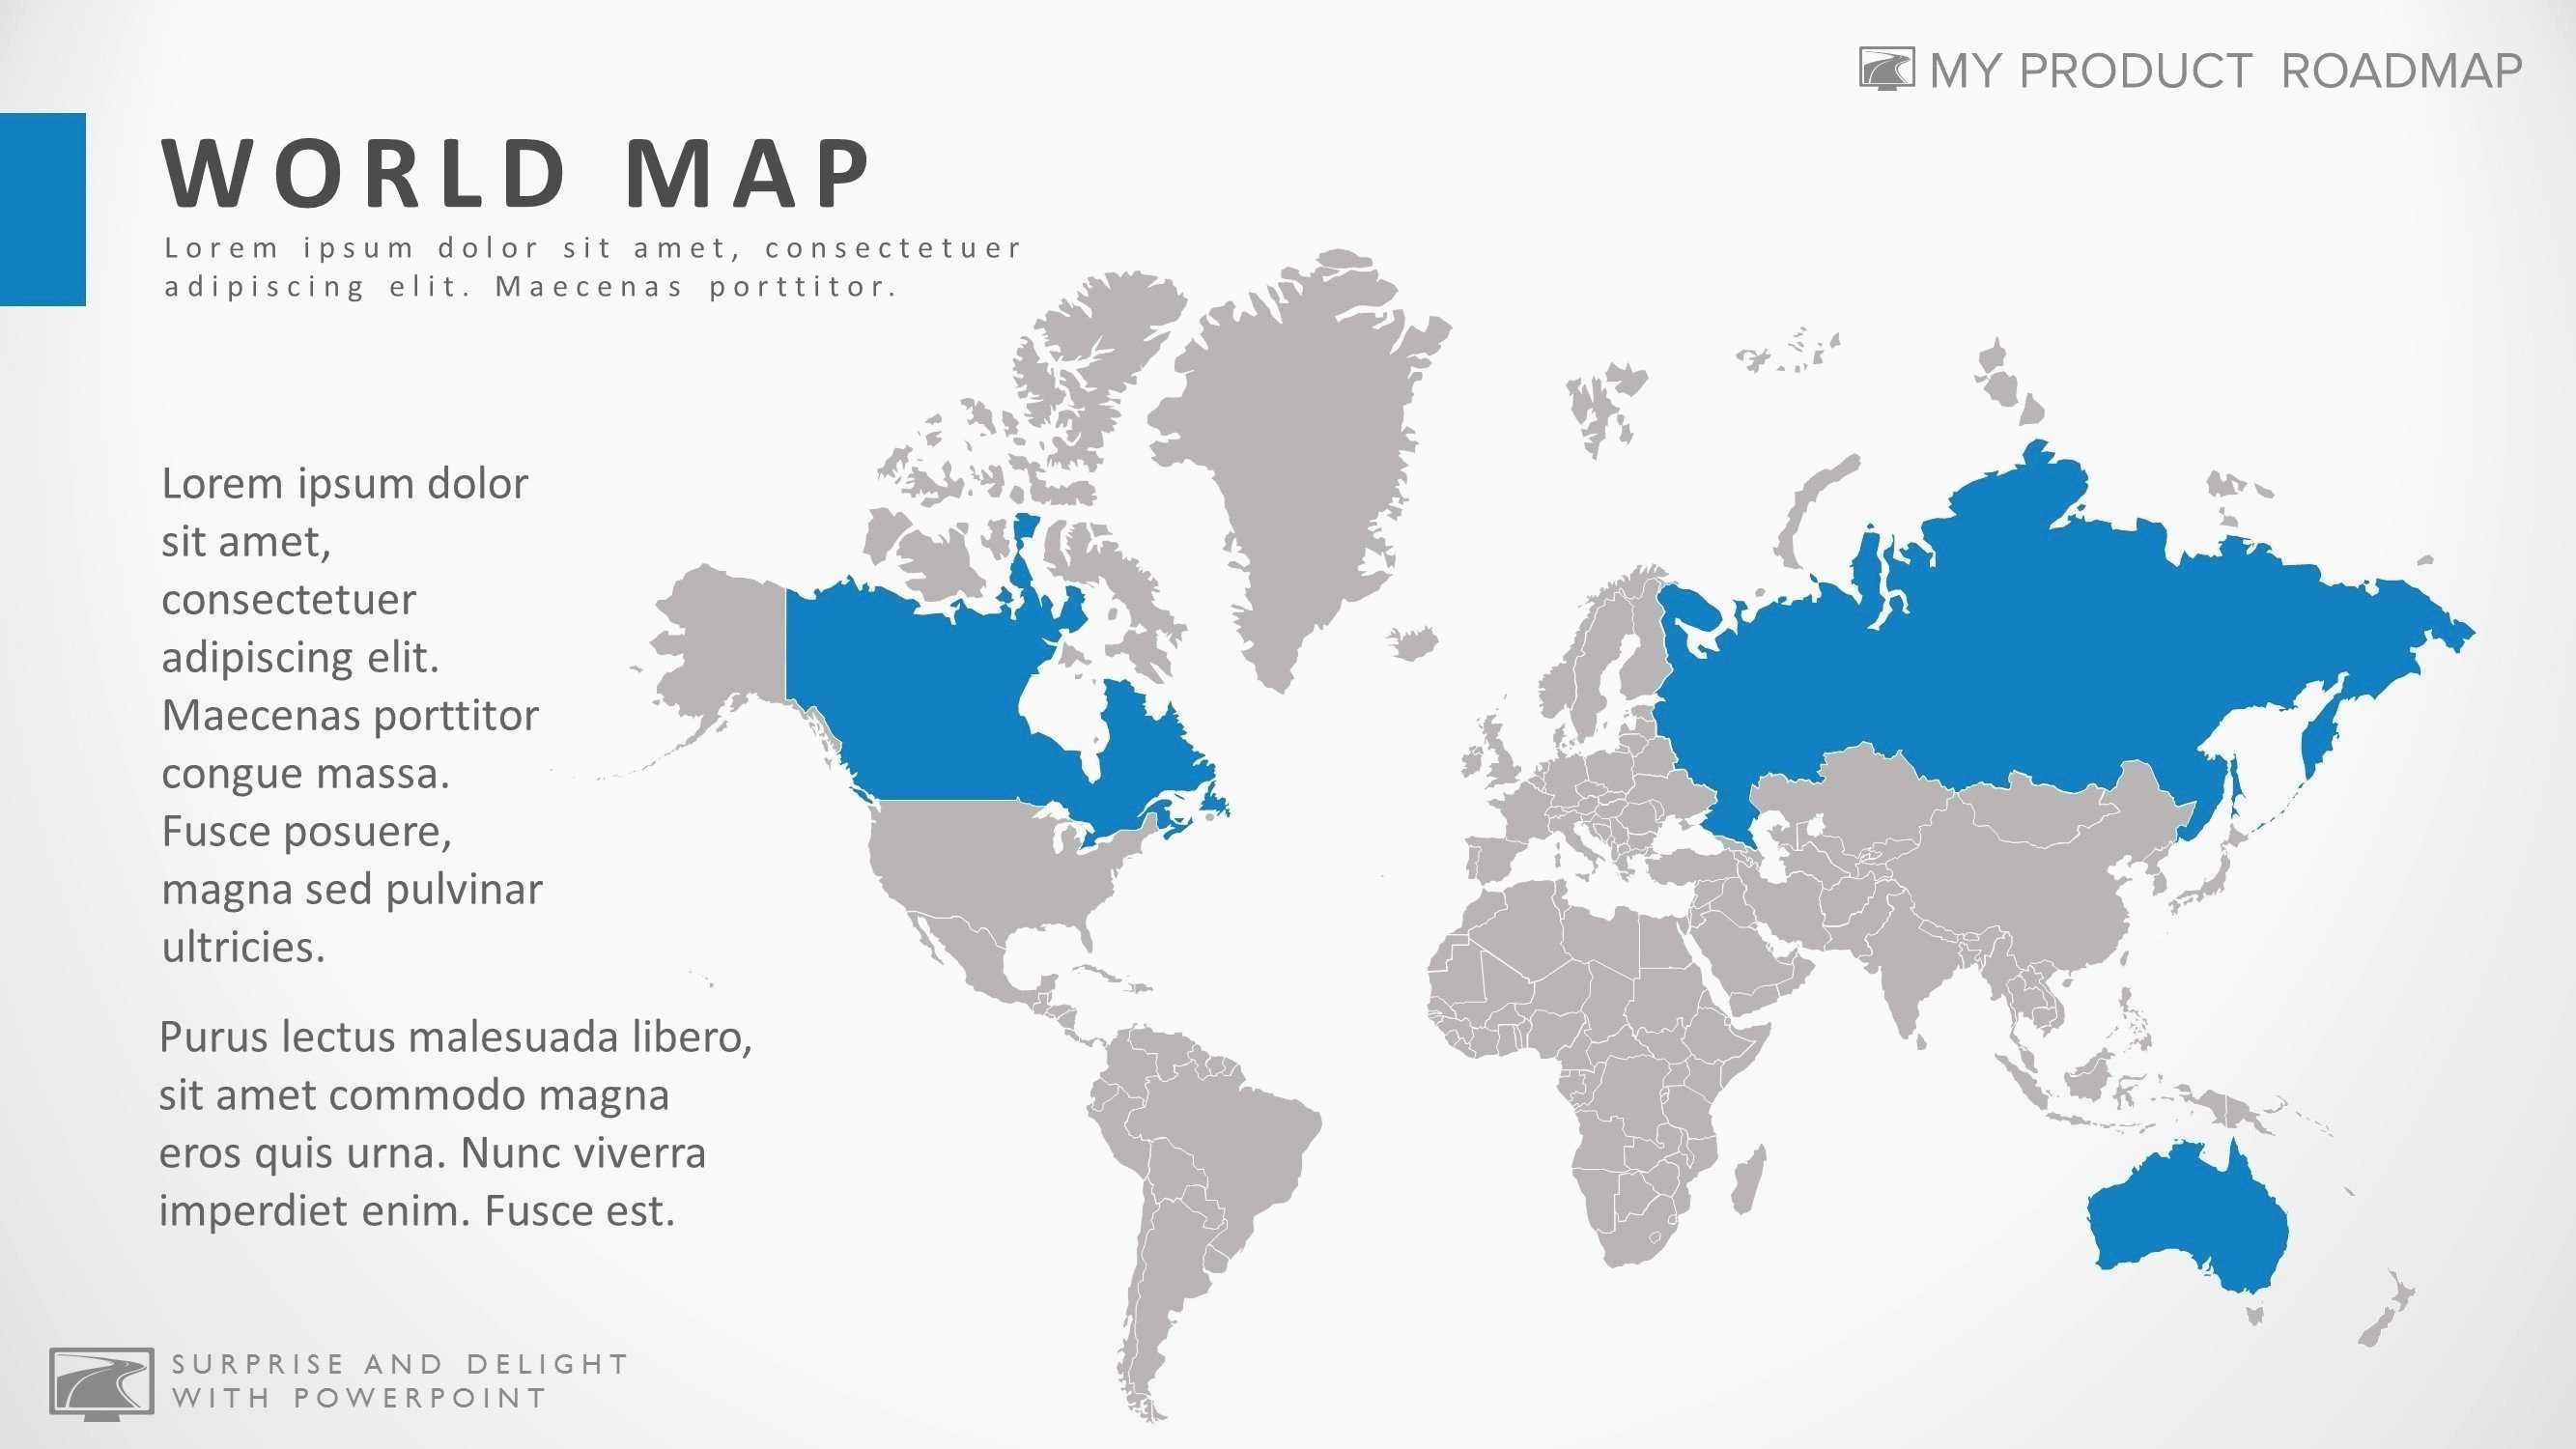 World Map Awesome ¢Ë†Å¡ Ppt Roadmap Template Free Awesome Ppt 0d Nanostructures Unique